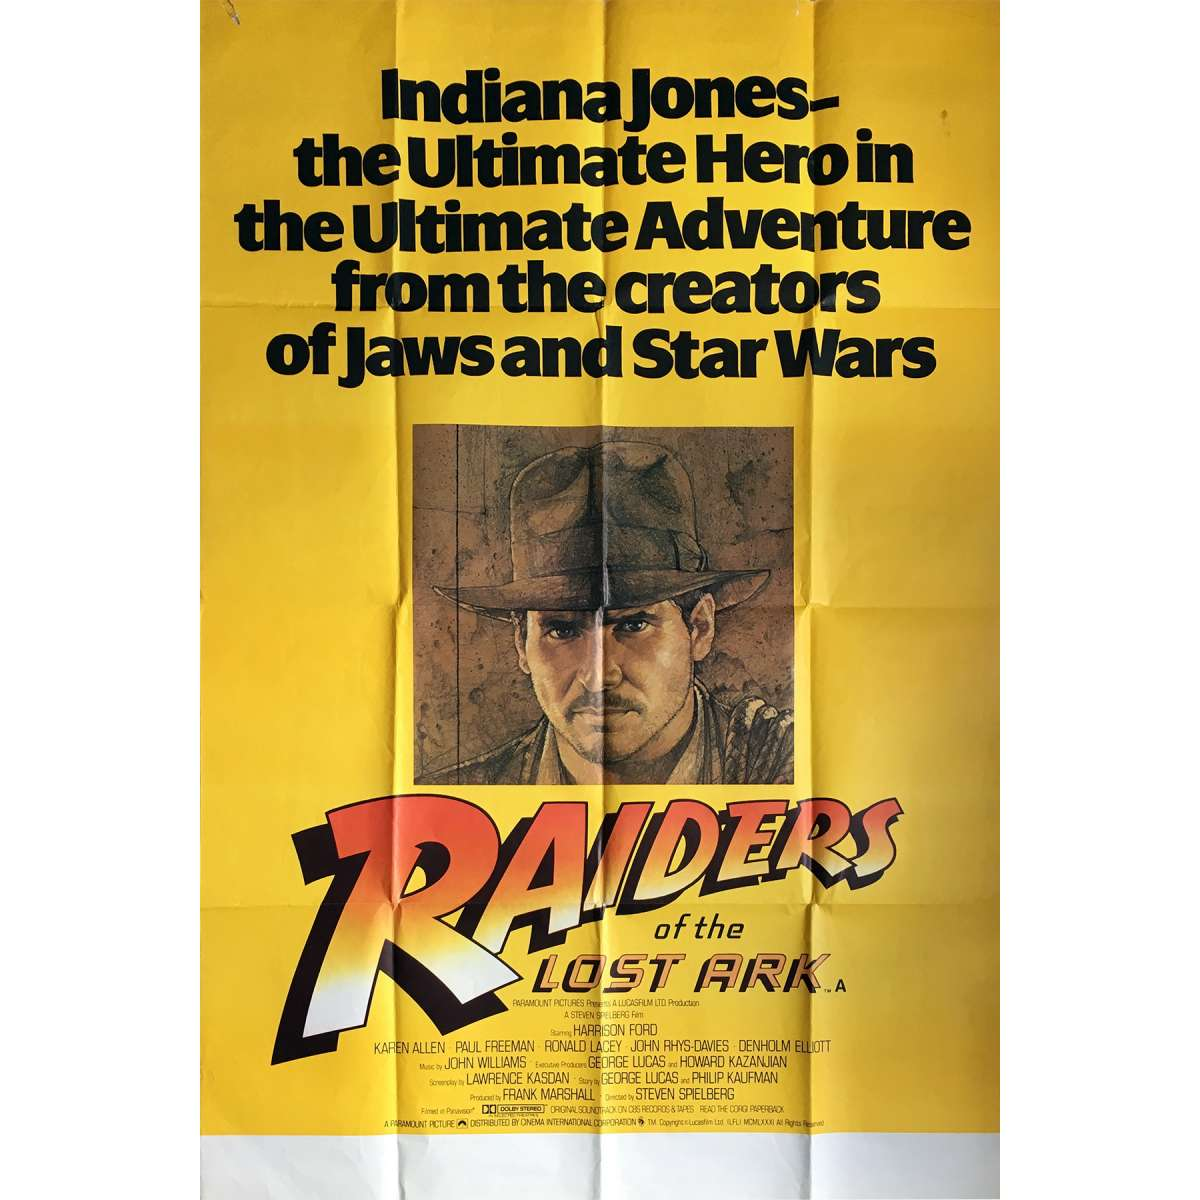 INDIANA JONES - RAIDERS OF THE LOST ARK Movie Poster - 40x60 in  - 1981 -  Steven Spielberg, Harrison Ford